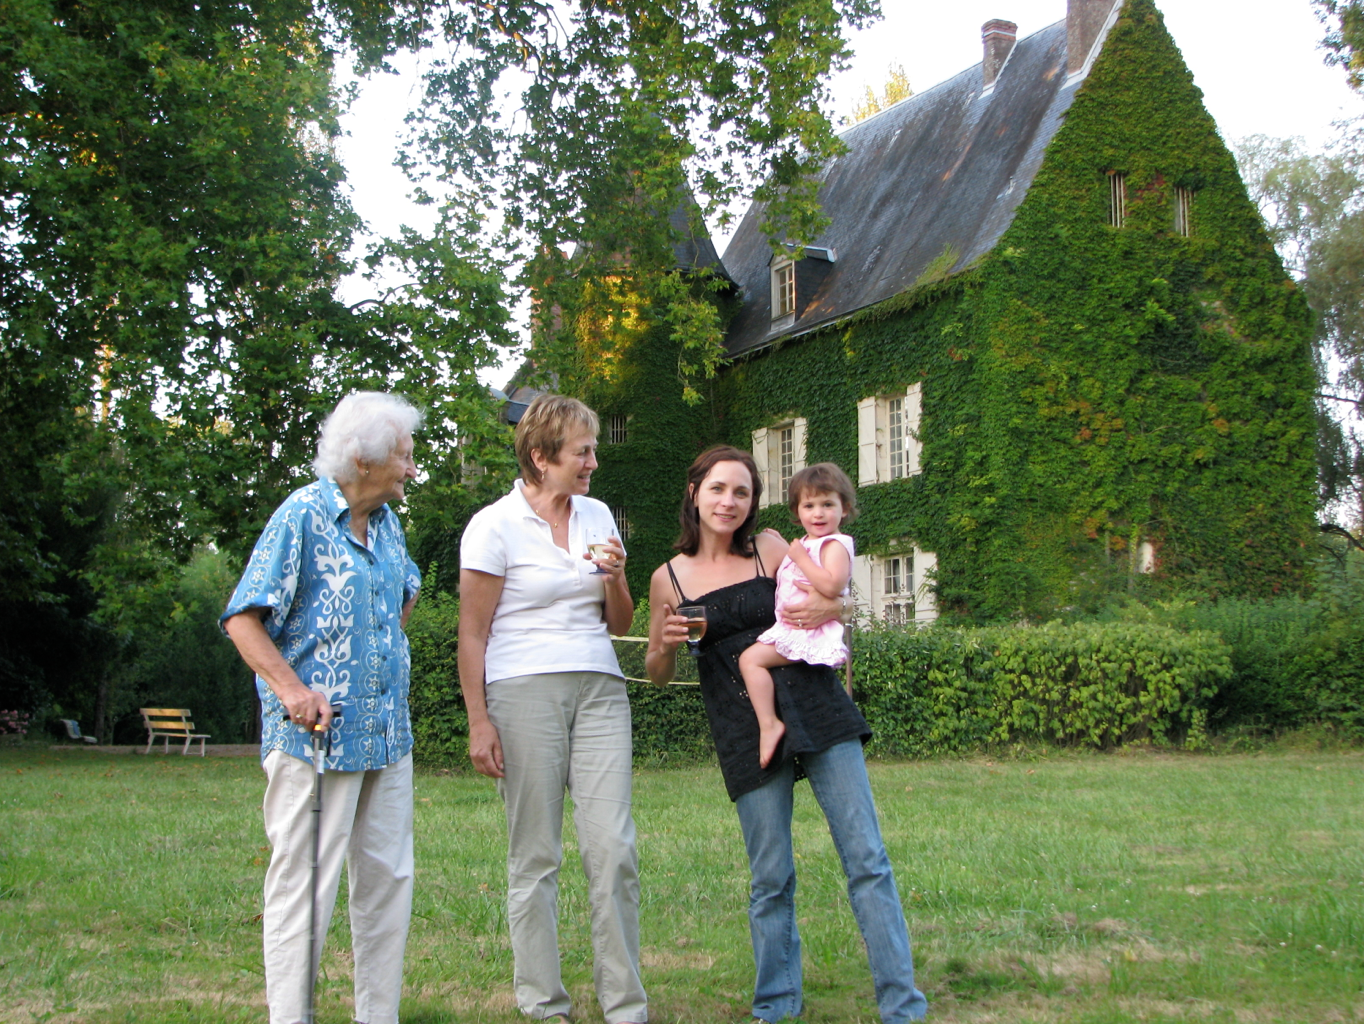 4 generations, 1 chateau, loire valley, FR